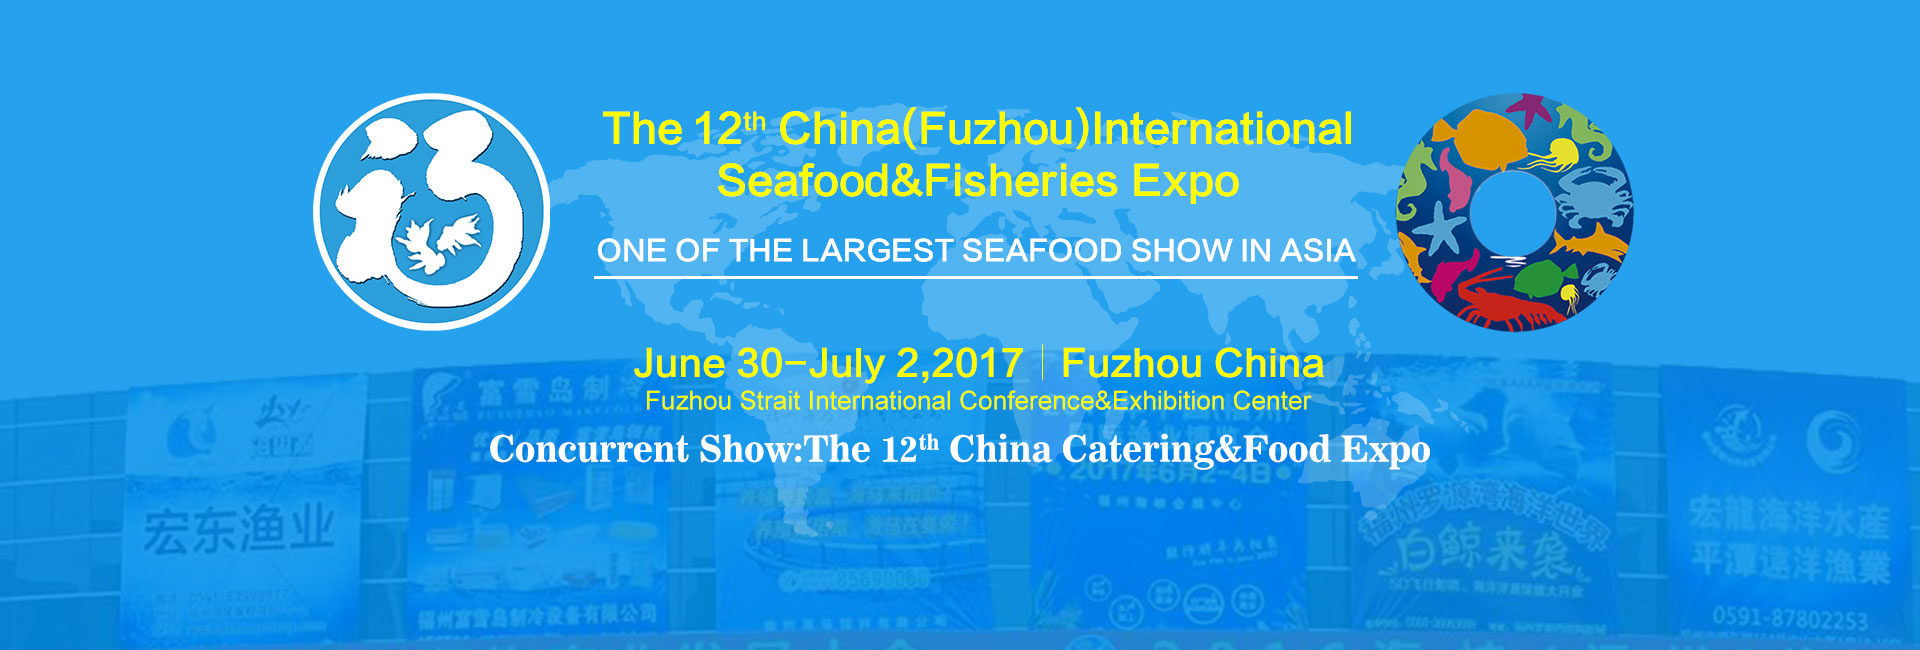 China (Fuzhou) International Fisheries Expo (FIFE) 2017